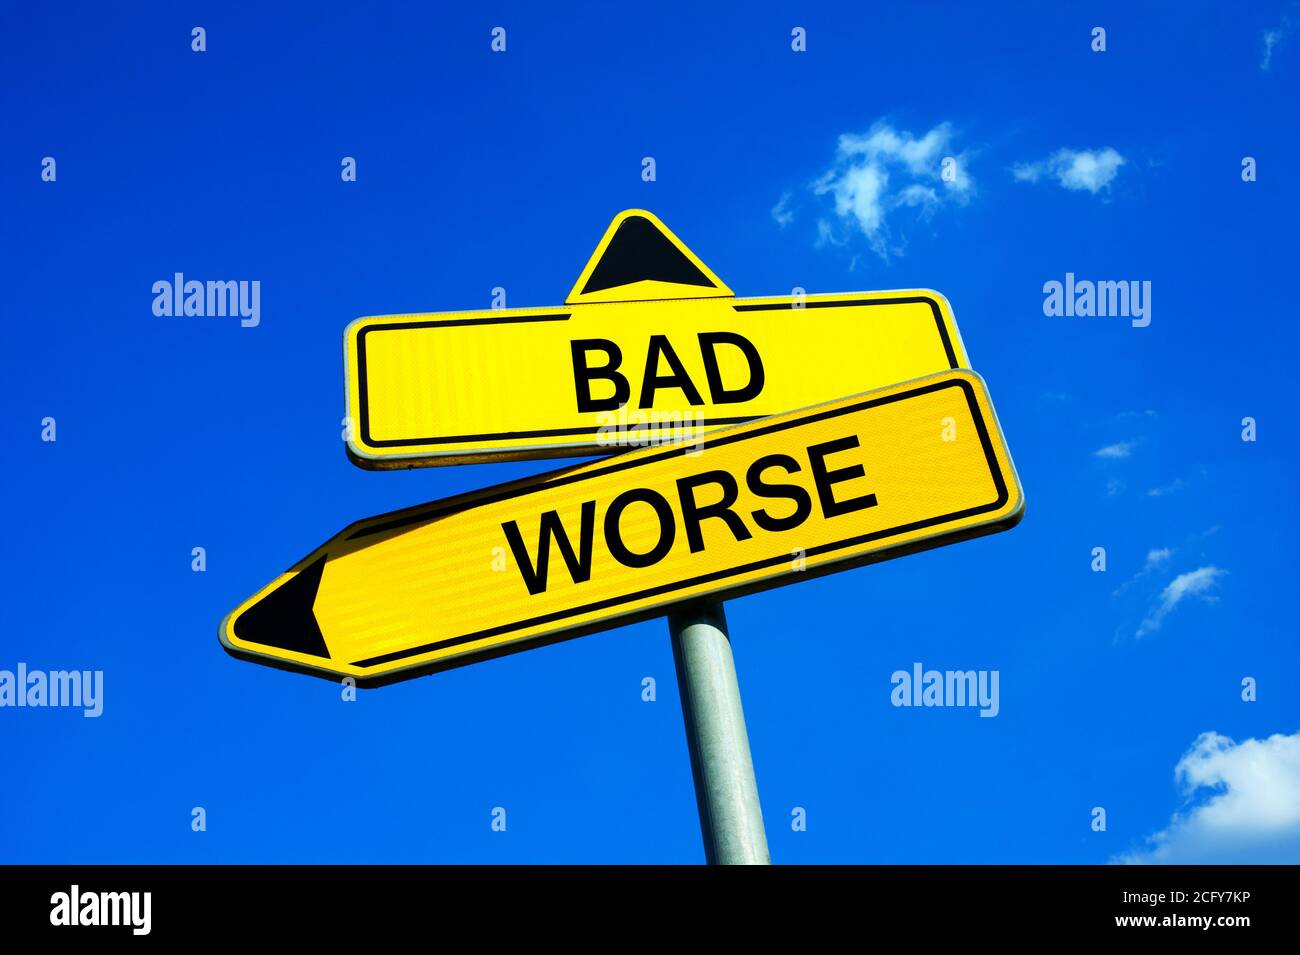 Bad or Worse - Traffic sign with two options - two negative and pessimist alternatives because of problems, troubles, failures and misfortune Stock Photo